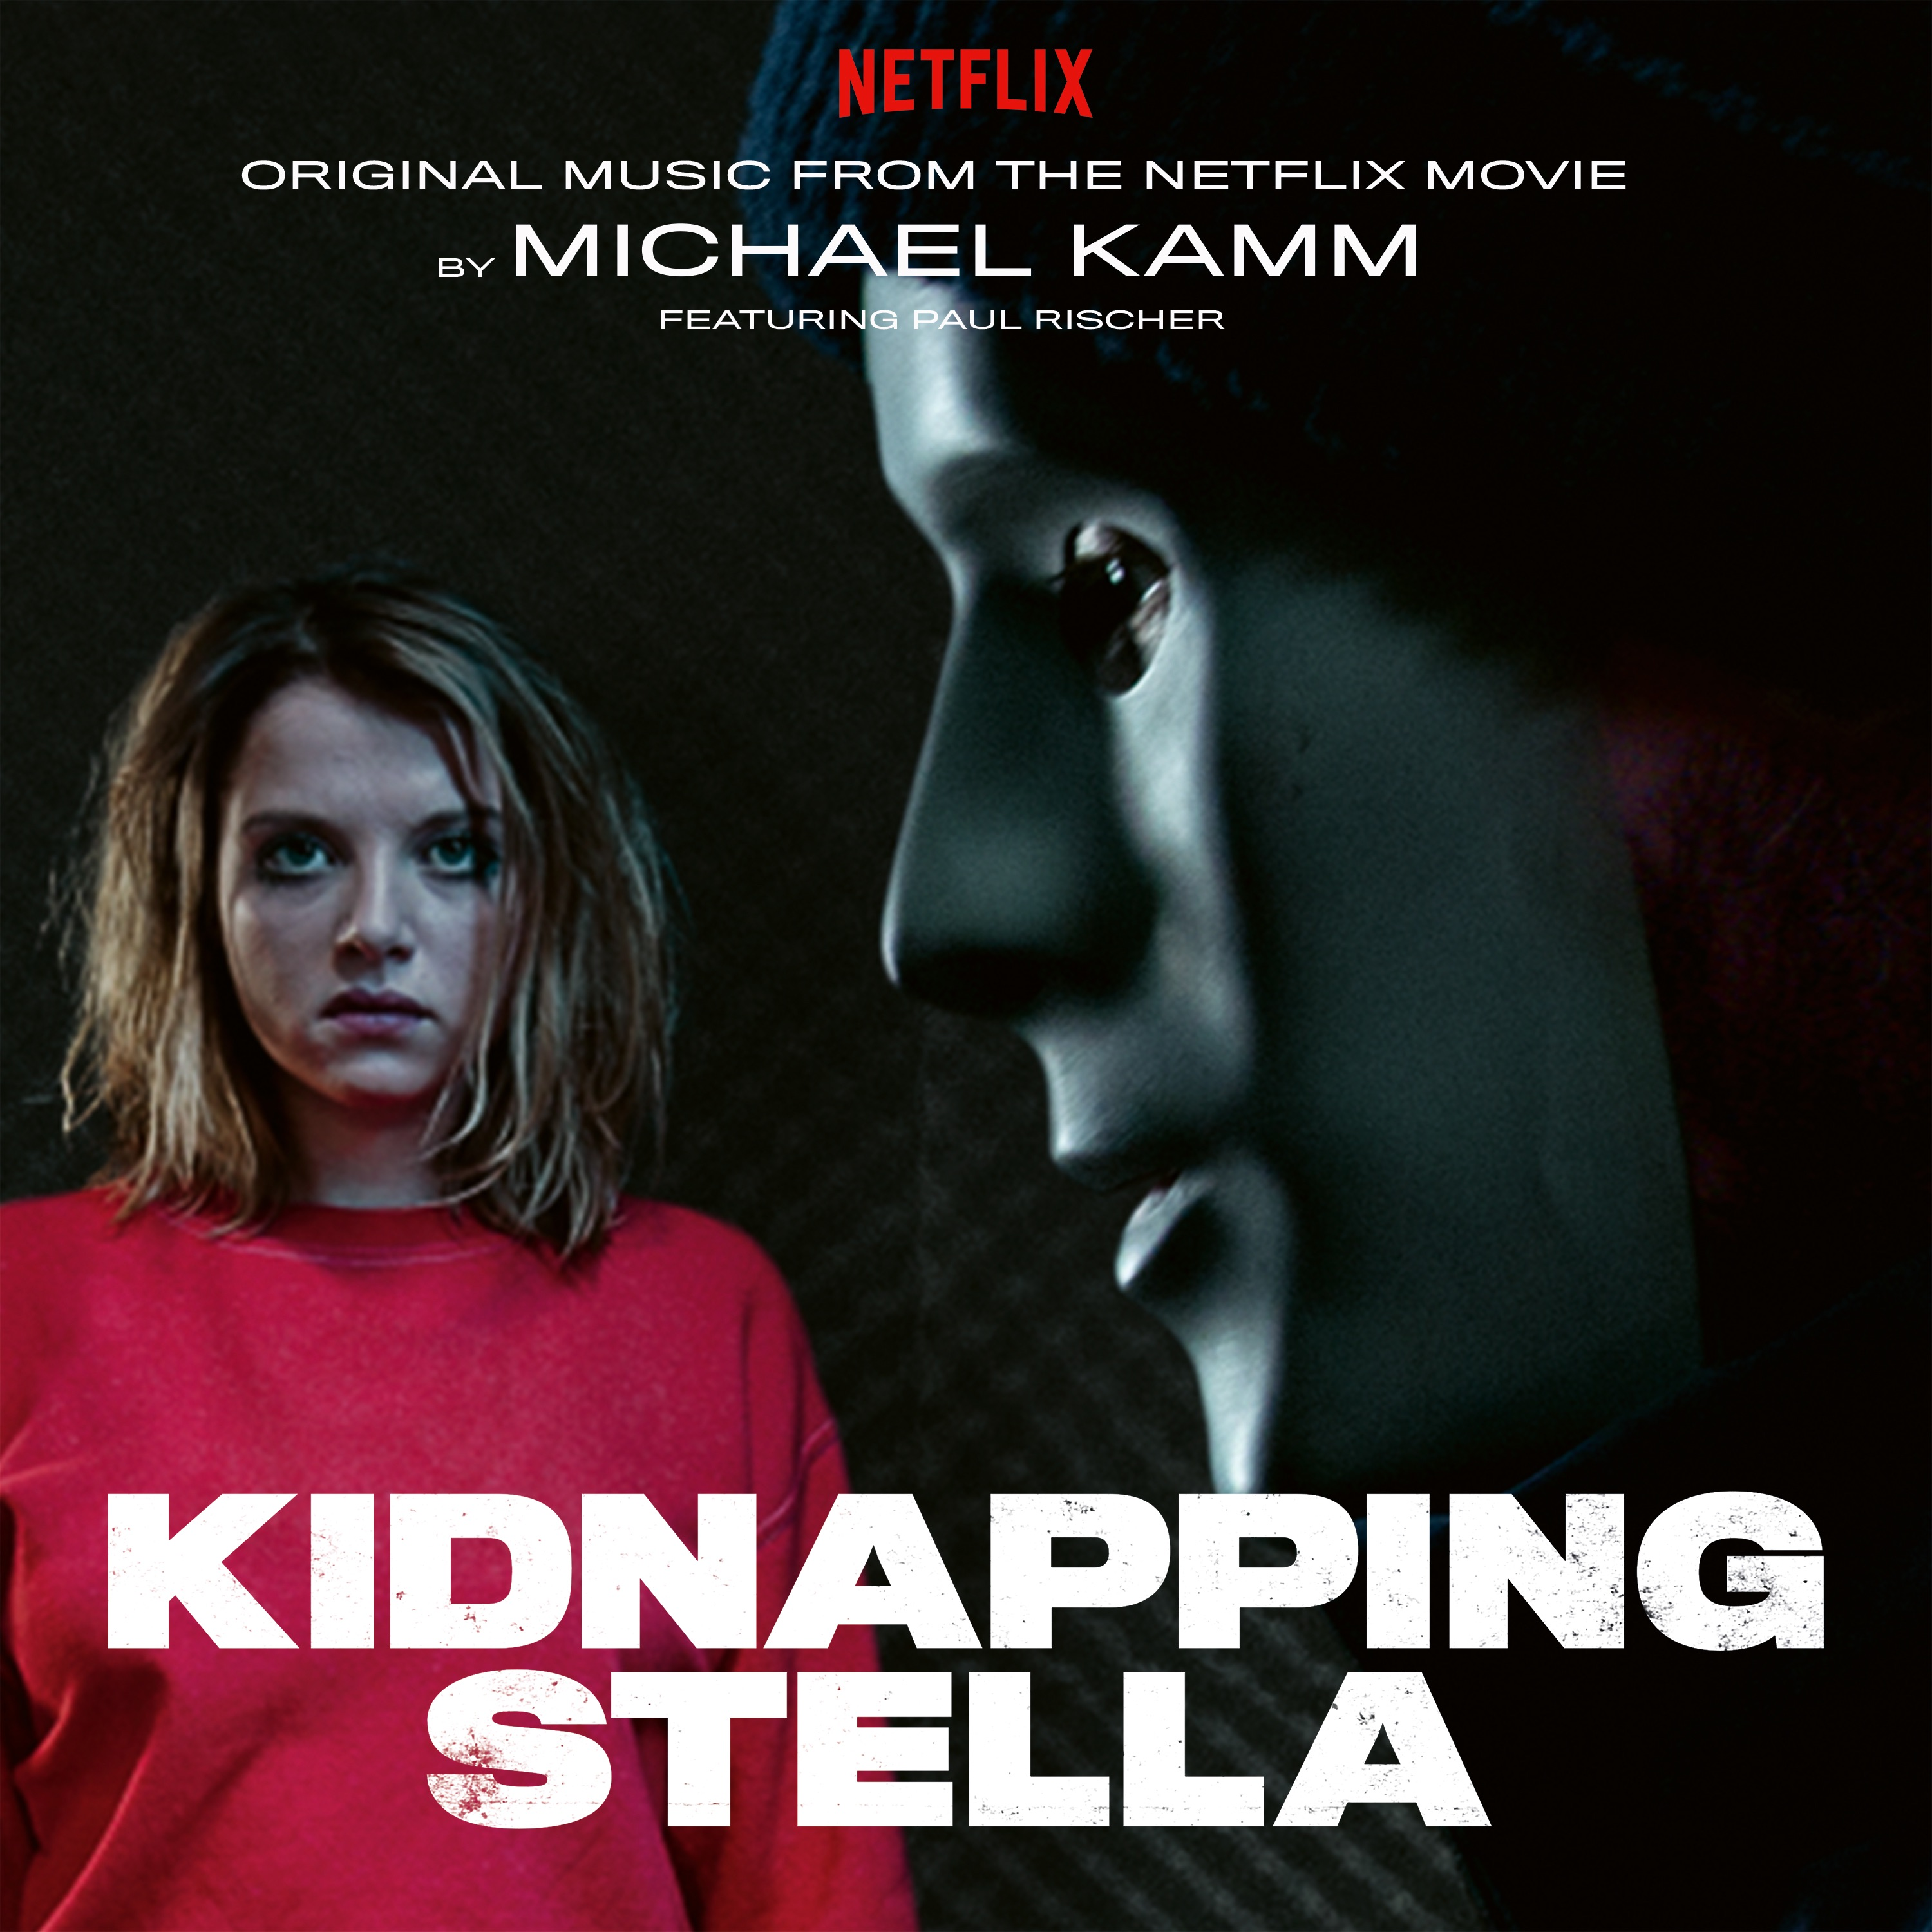 Kidnapping Stella Original Music from the Netflix Movie